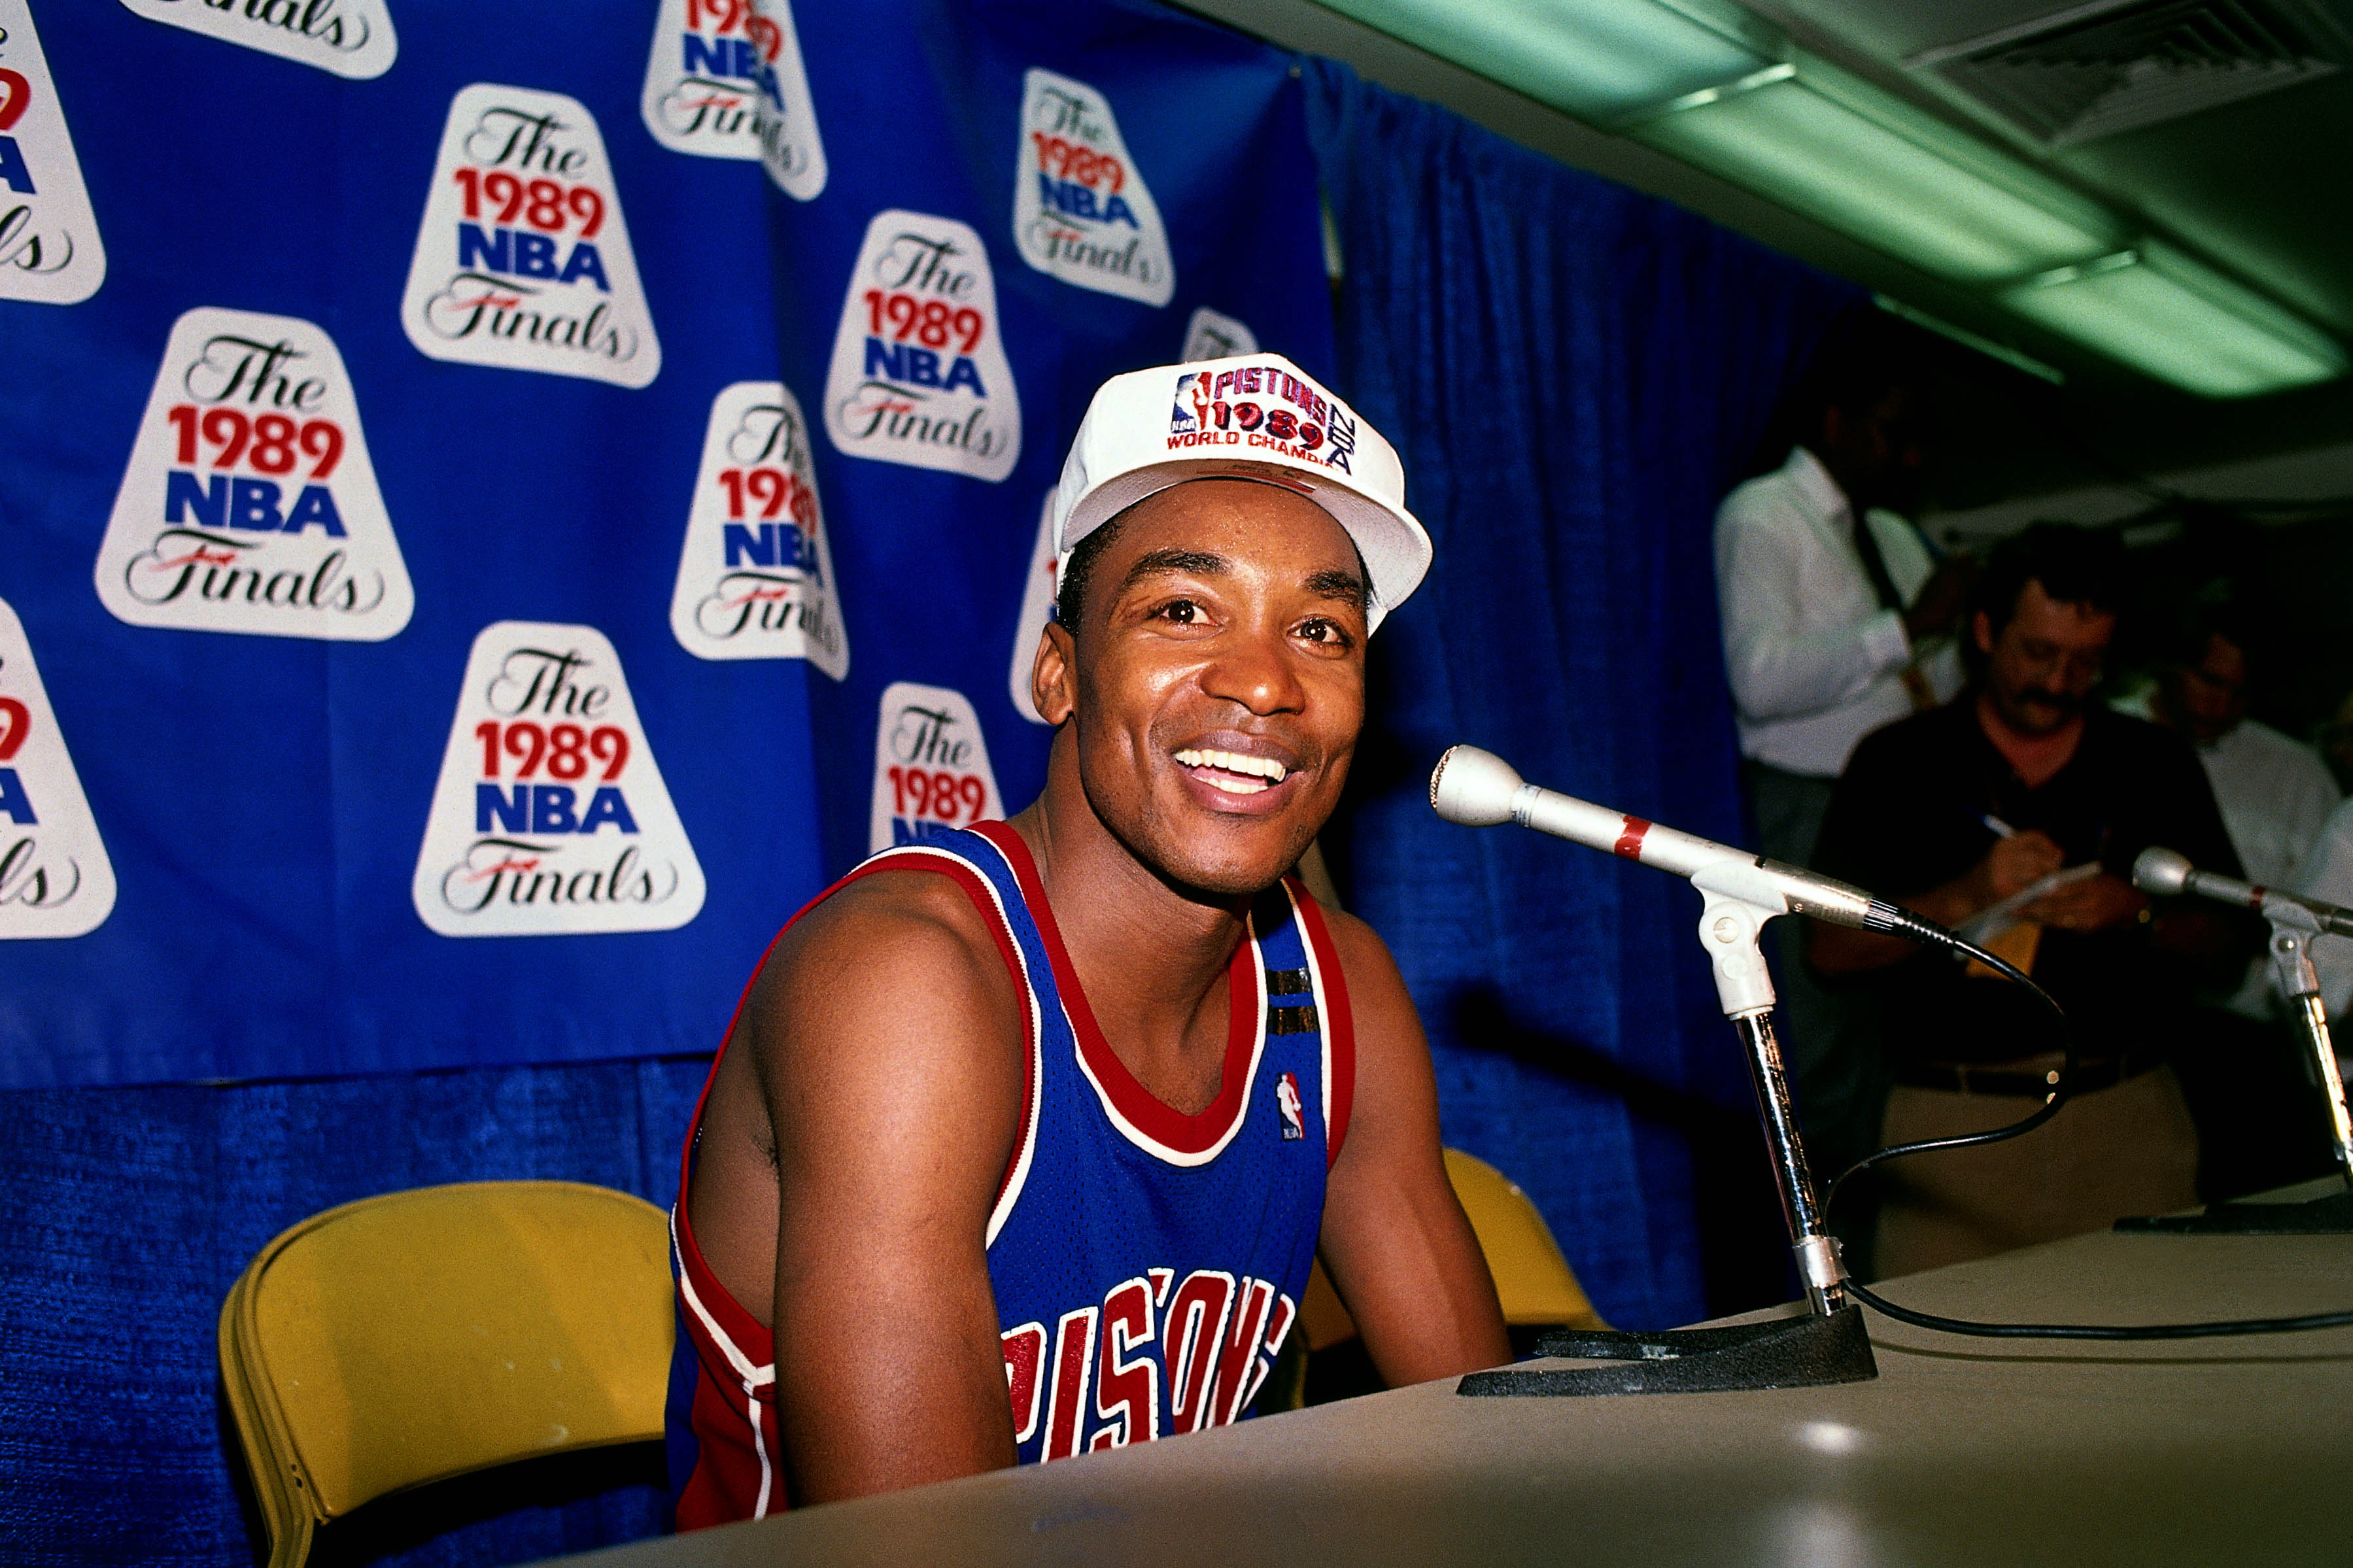 INGLEWOOD, CA - JUNE 13: Isiah Thomas #11 of the Detroit Pistons smiles for the camera during the Postgame Press Conference of game four of the NBA Finals. The Detroit Pistons defeated the Los Angeles Lakers to win the championship at The Great Western Forum on June 13, 1989 in Inglewood, Calfifornia. NOTE TO USER: User expressly acknowledges that, by downloading and or using this photograph, User is consenting to the terms and conditions of the Getty Images License agreement. Mandatory Copyright Notice: Copyright 1989 NBAE (Photo by Nathaniel S. Butler/NBAE via Getty Images)